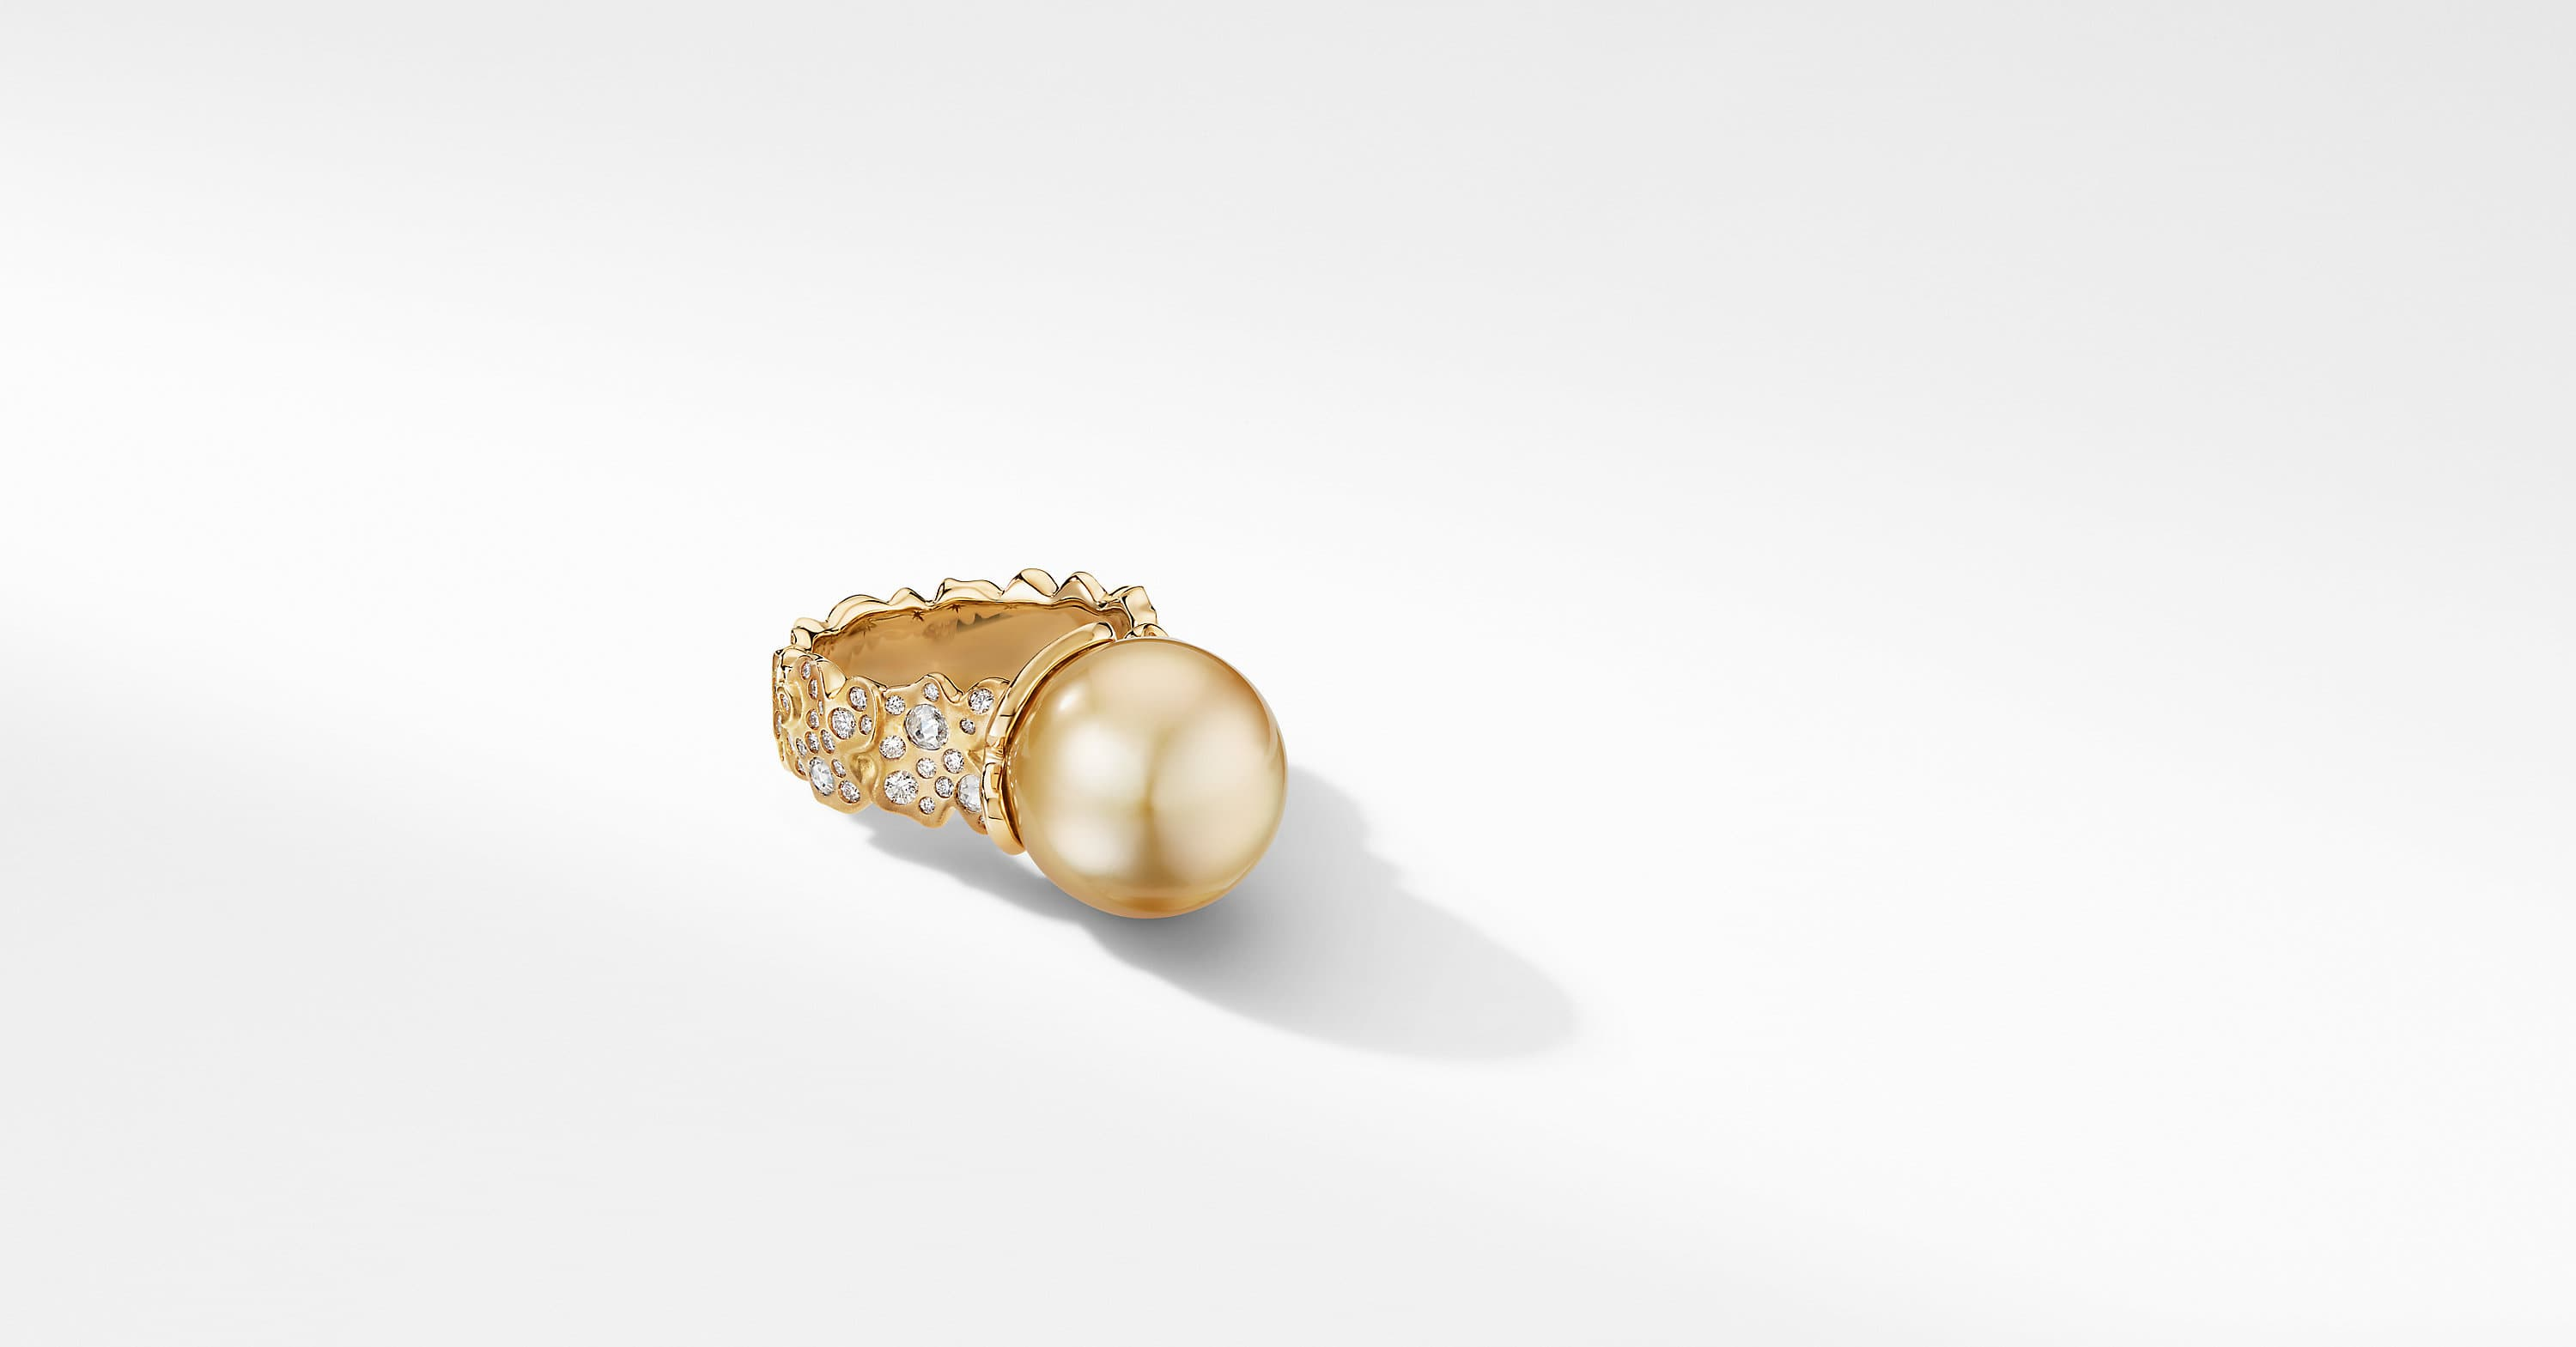 Day Petals Golden Pearl Ring in Yellow Gold with Diamonds